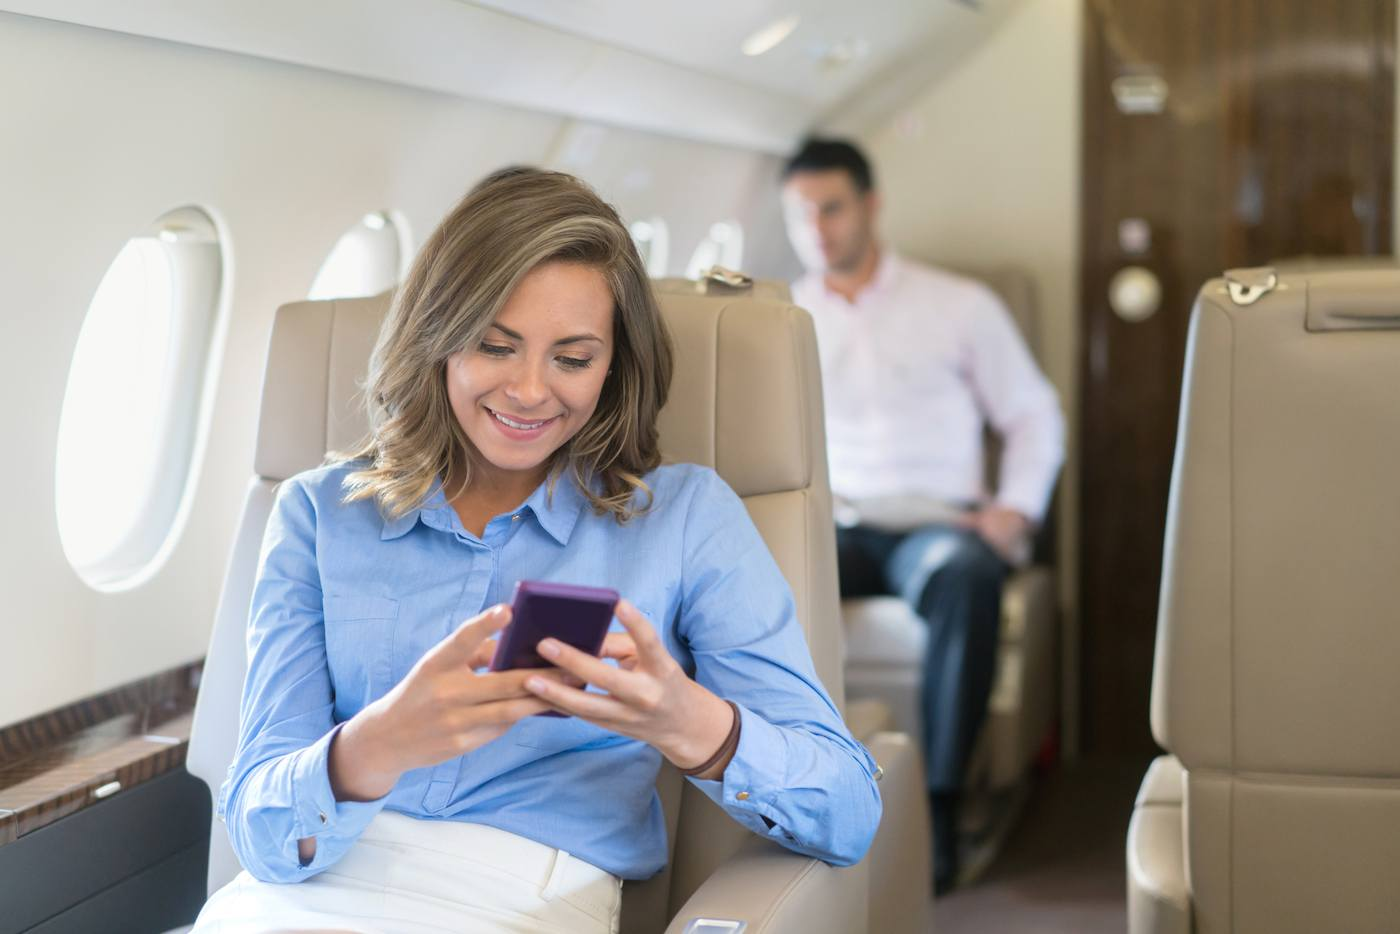 How to score a first class flight upgrade at a fraction of the cost